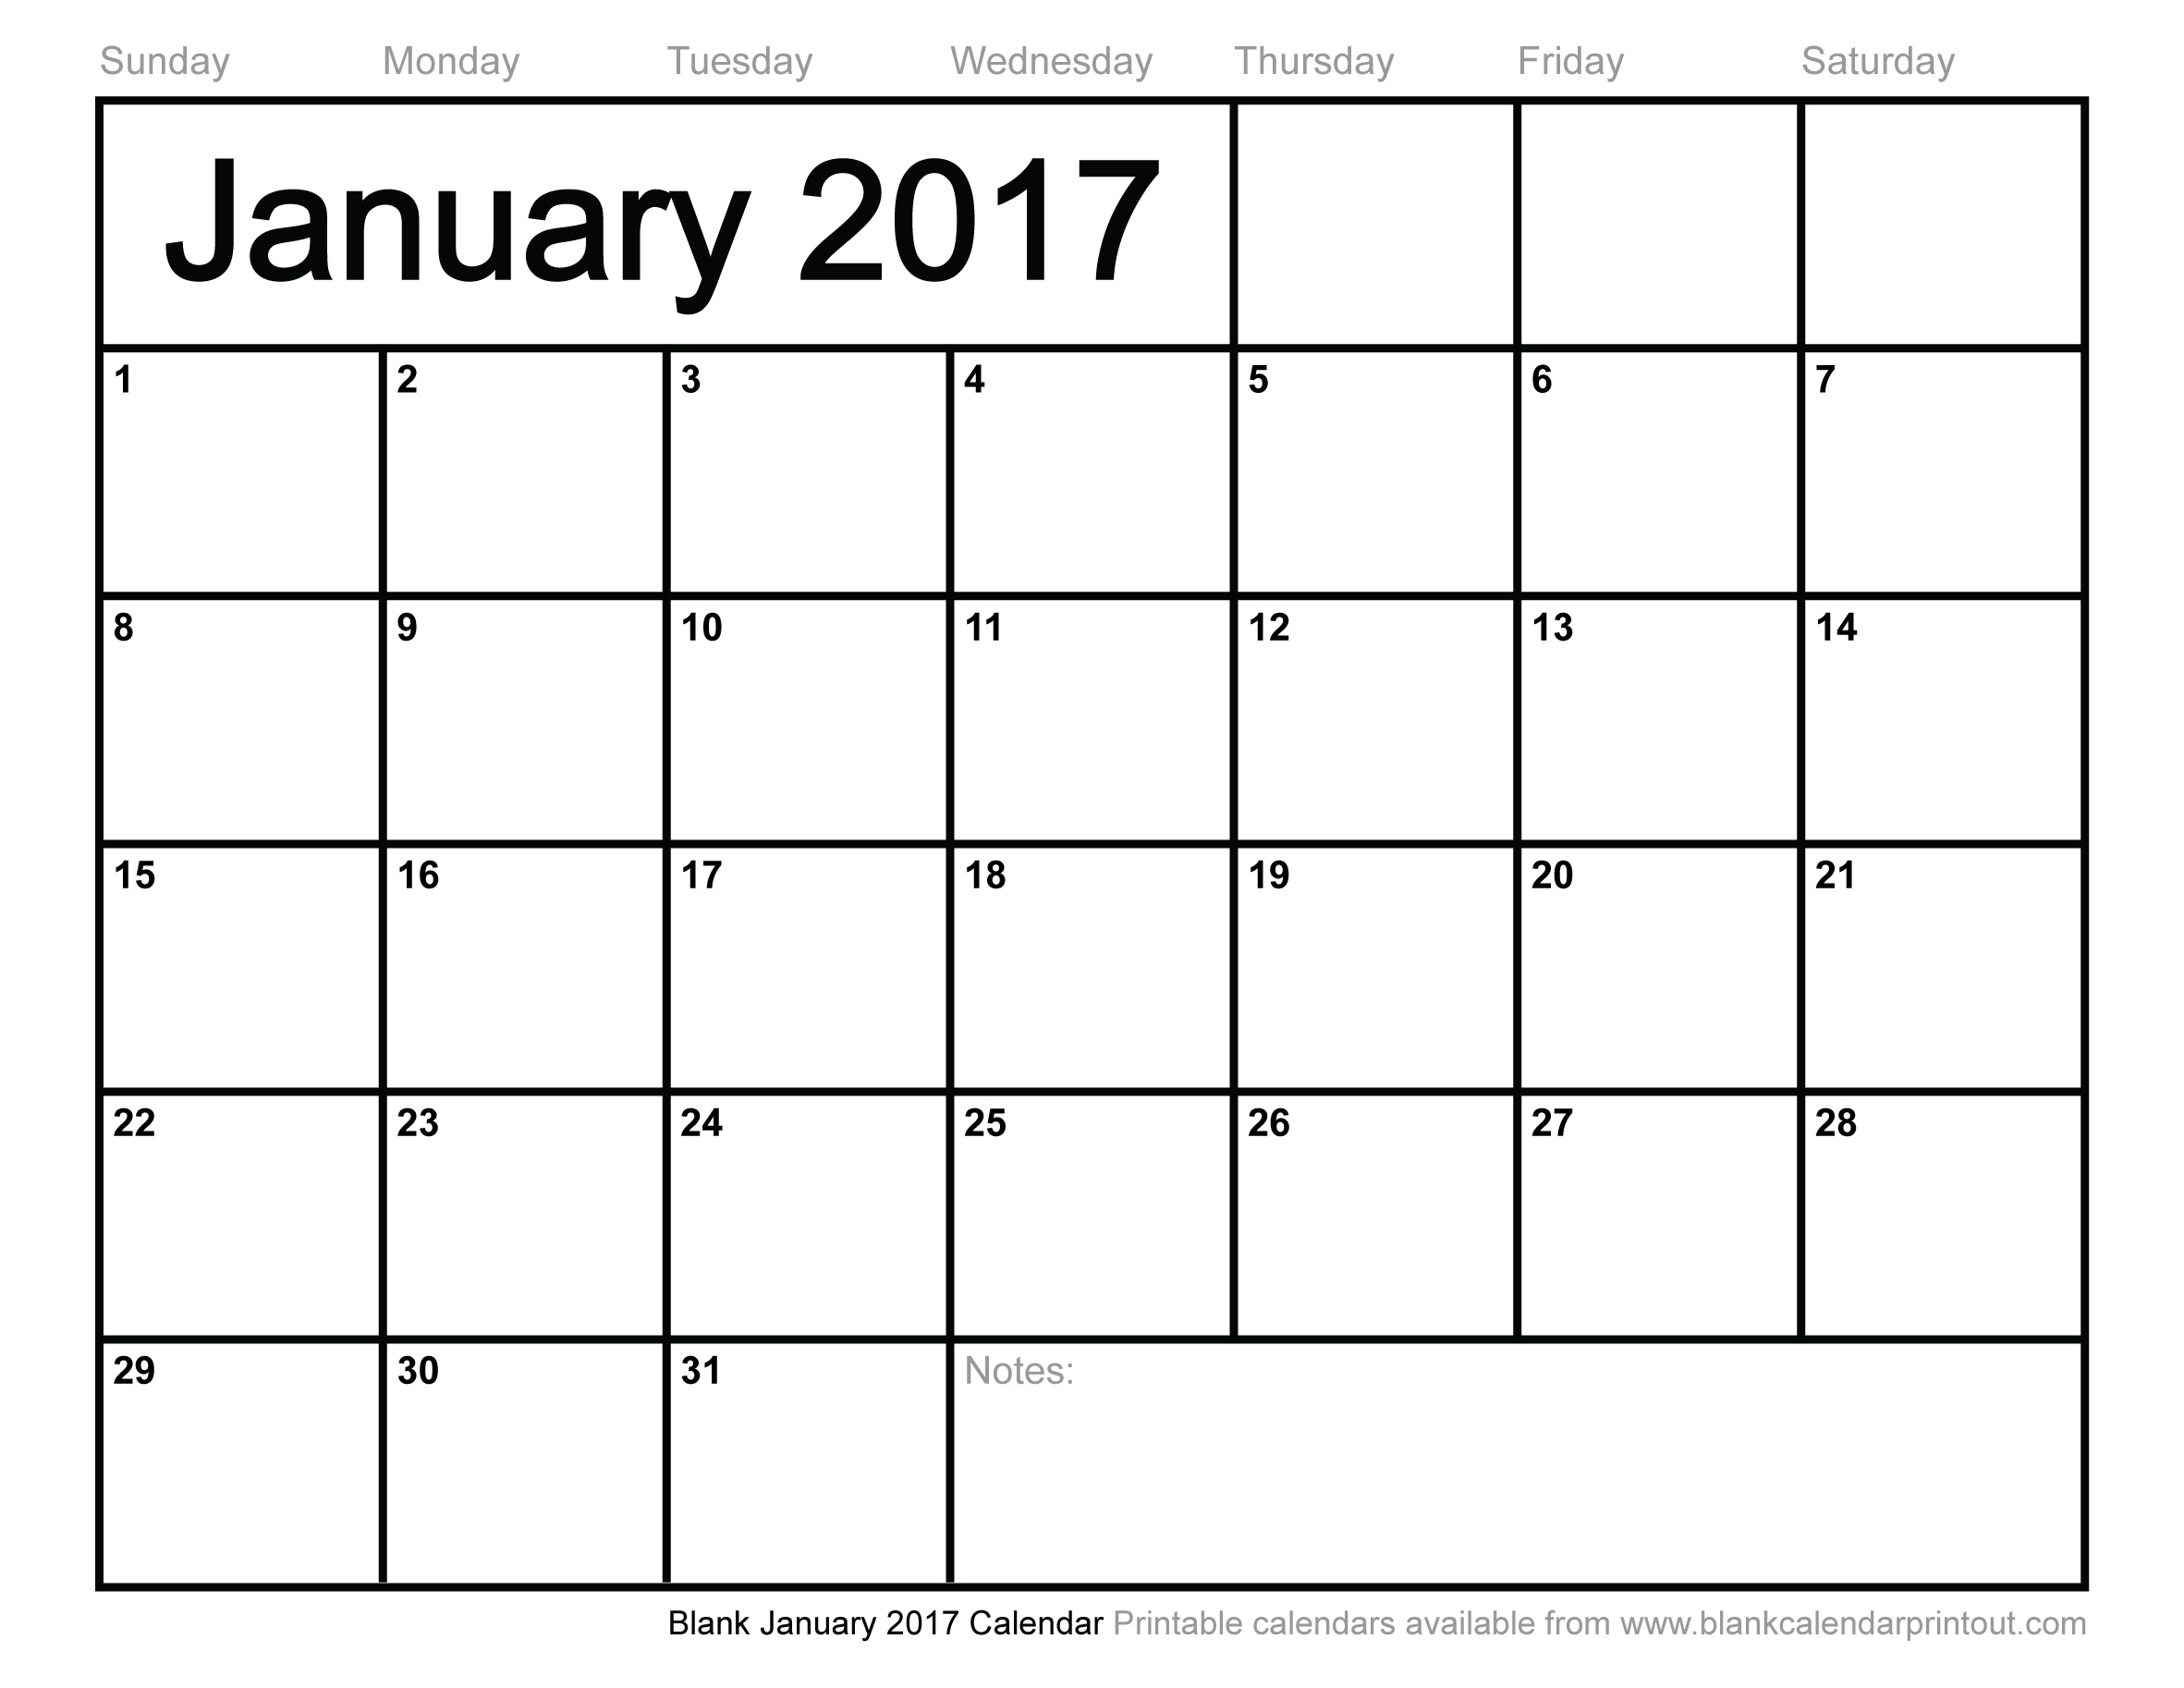 January Calendar Templates  Topa.mastersathletics.co for Blogilates December 2020 Calendar